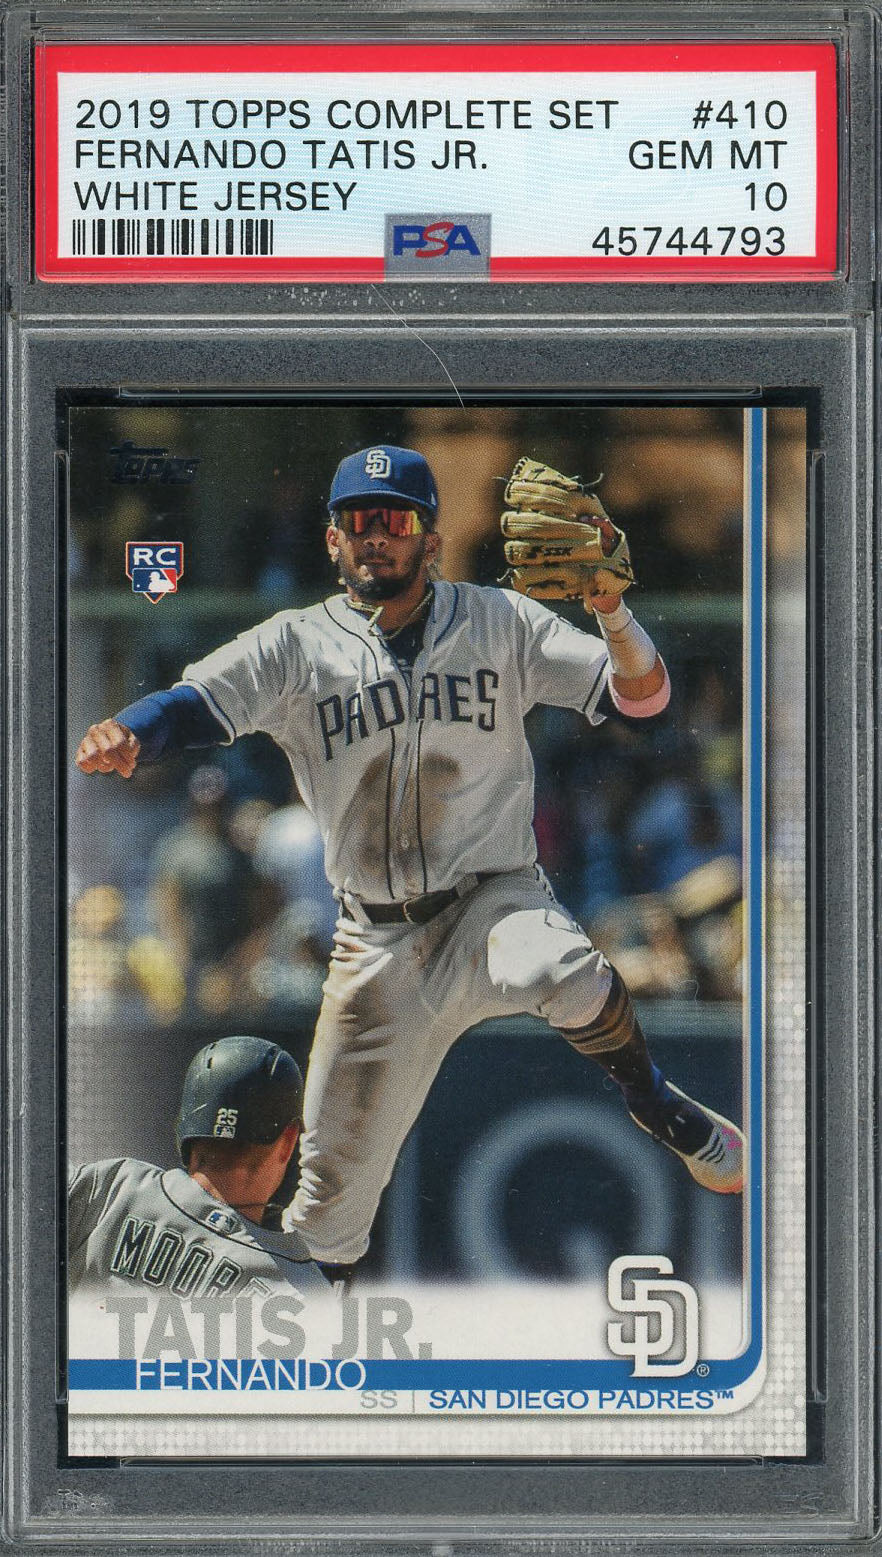 Fernando Tatis Jr 2019 Topps Complete Baseball Rookie Card RC #410 Graded PSA 10 Gem Mint-Powers Sports Memorabilia